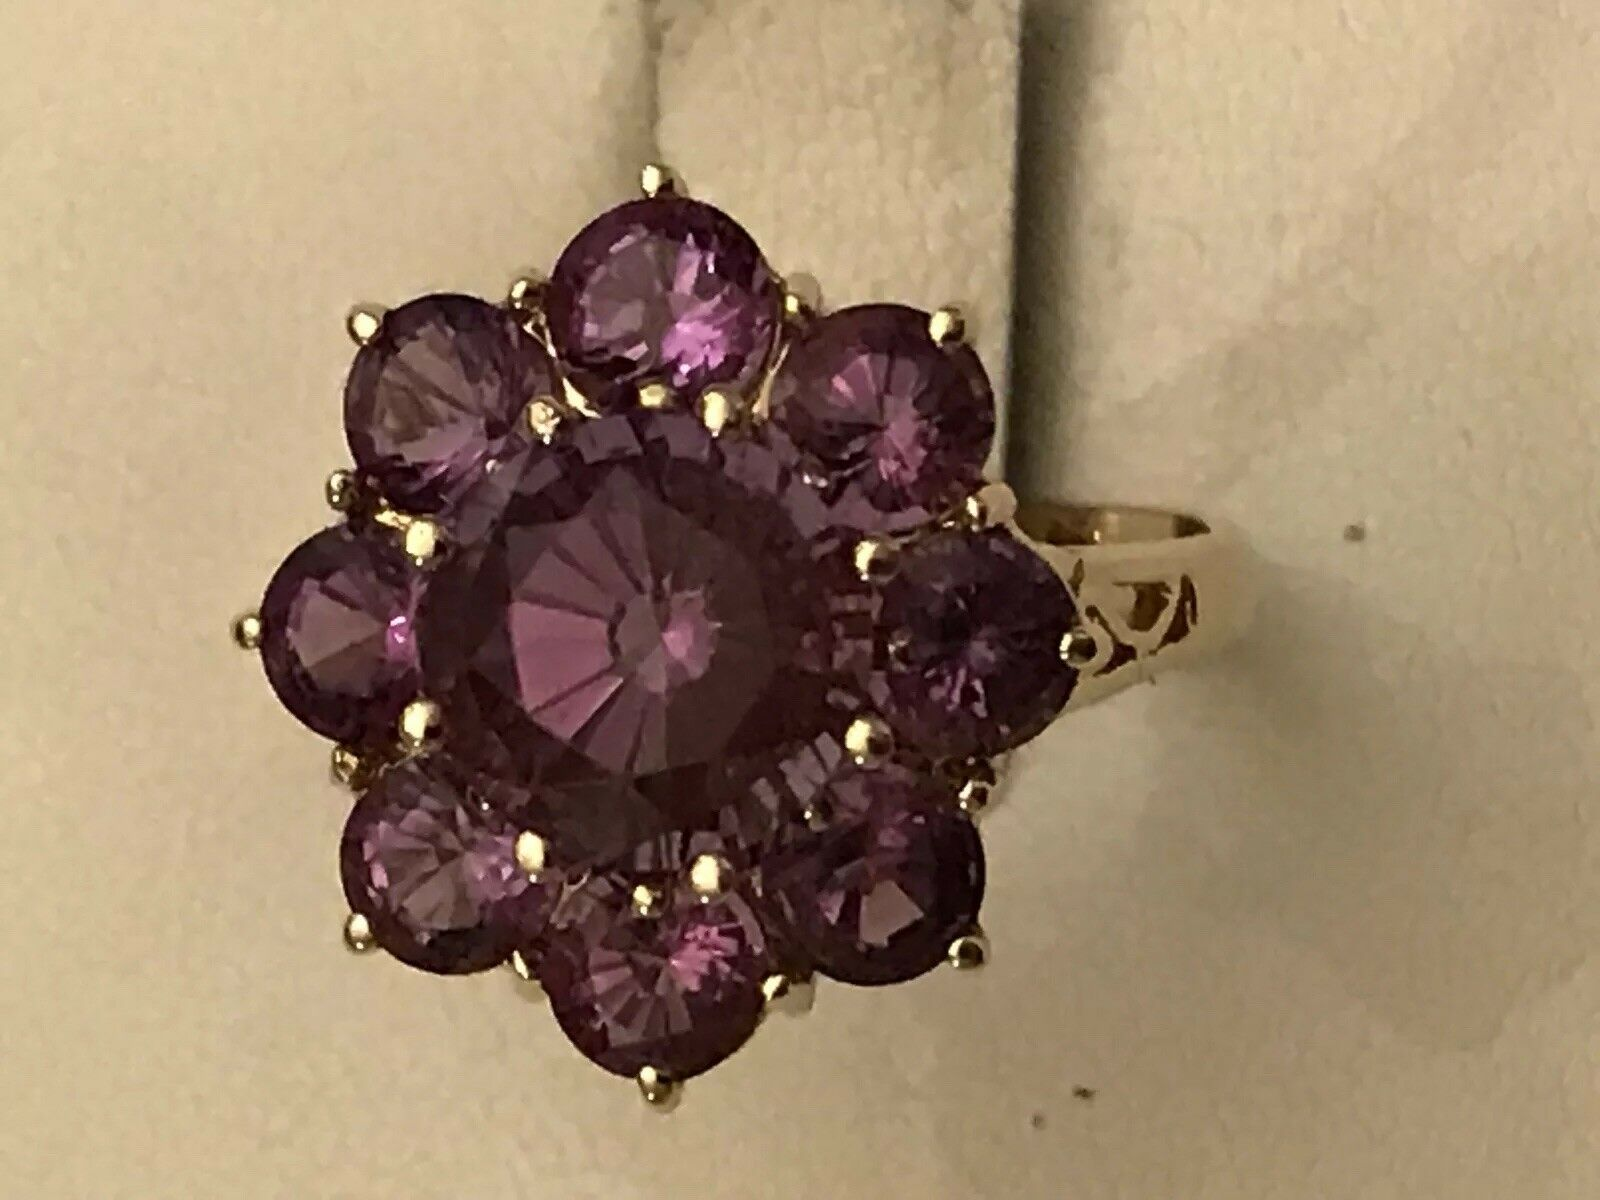 14k Yellow gold Round Amethyst Cluster Ring Size 6 3 4 - 4.4 Grams